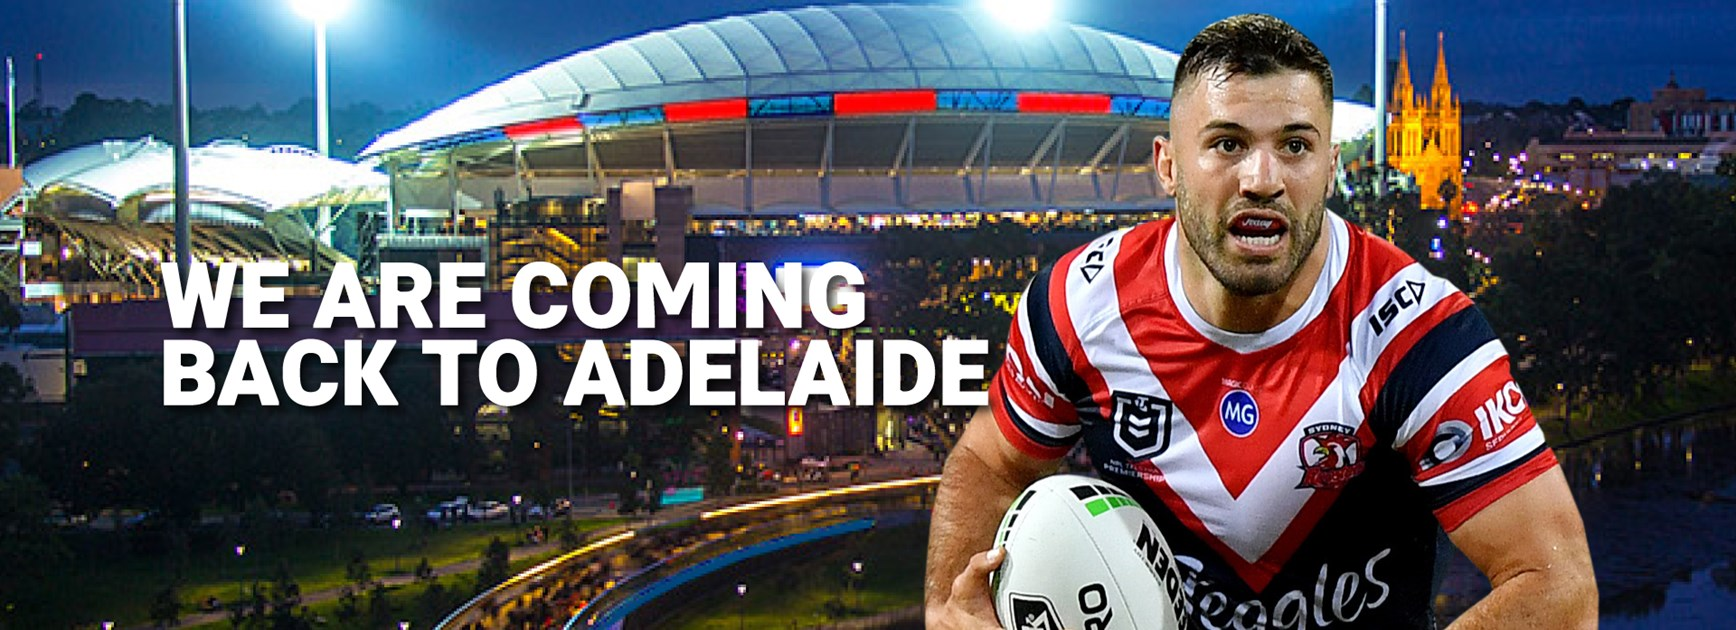 Become a Roosters Adelaide Member and secure your seats today!